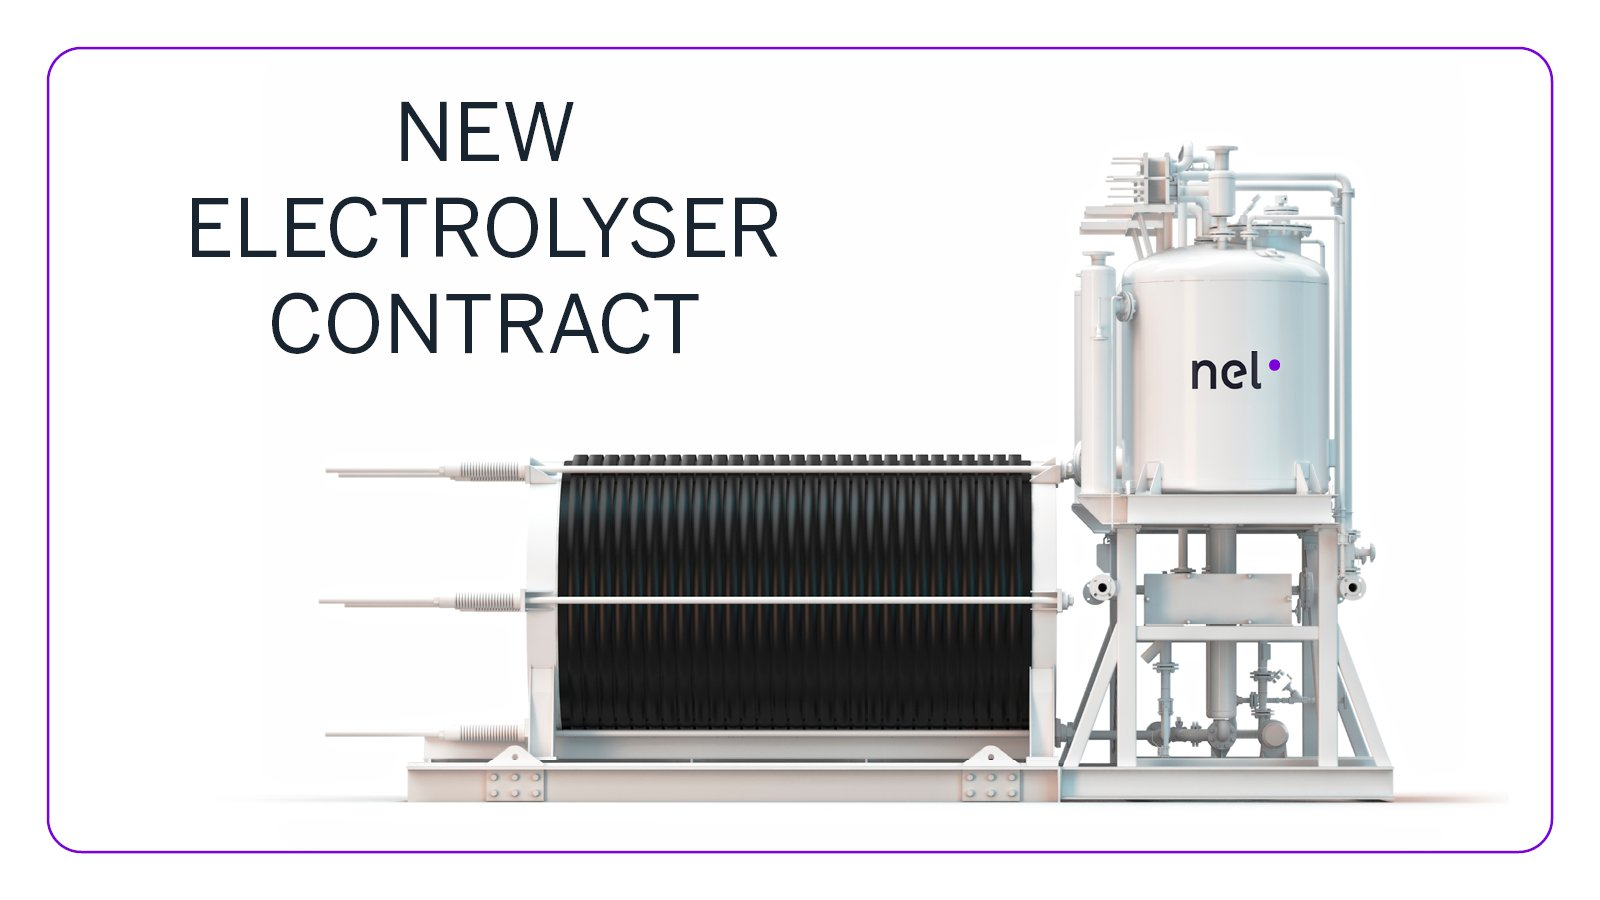 Nel new Electrolyser Contract for France